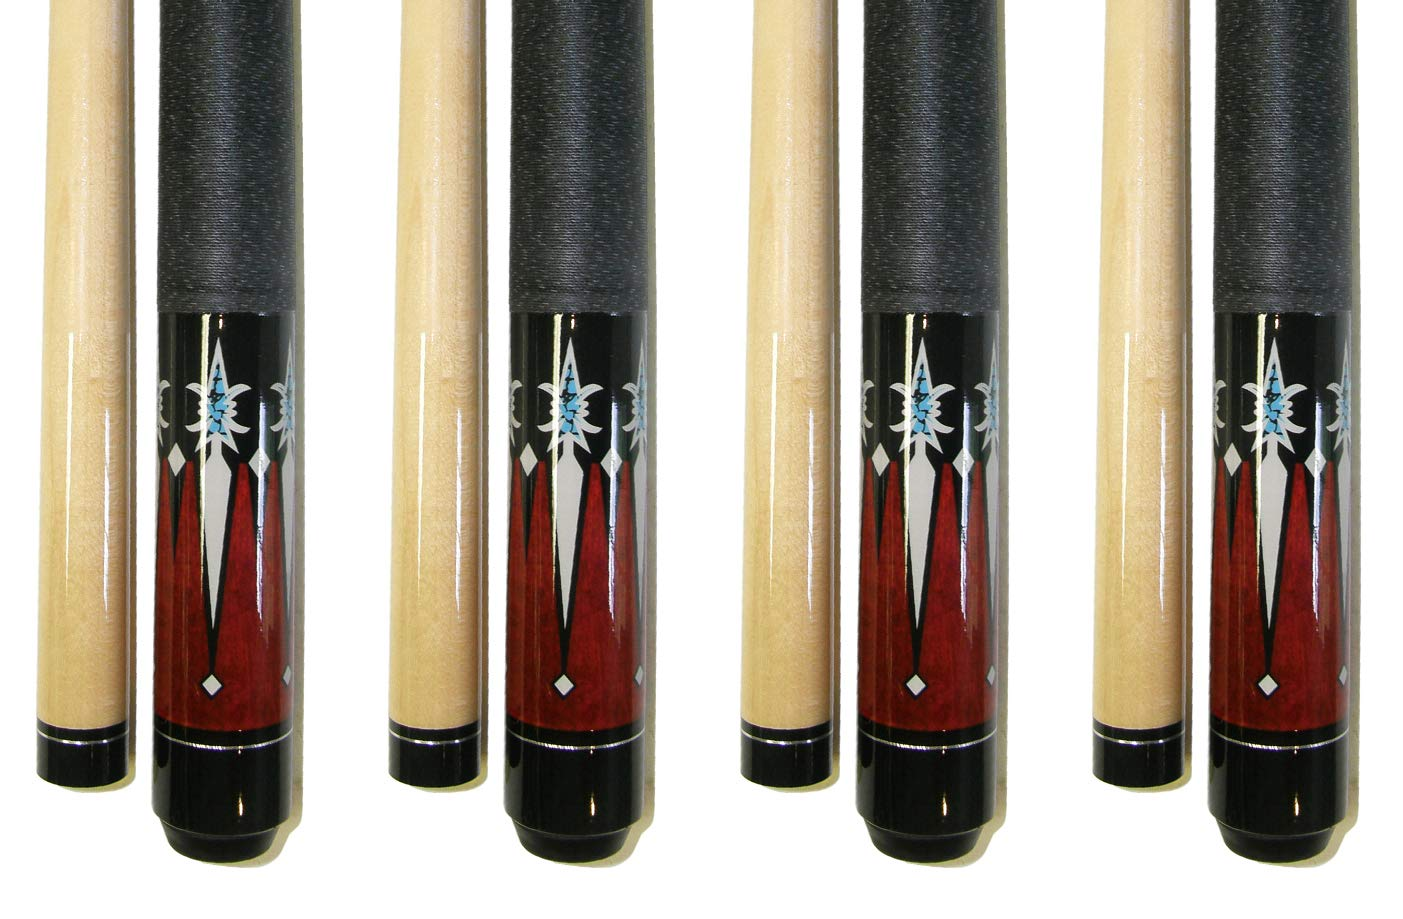 Lot of 4-58'' 2 Piece Hardwood Canadian Maple Pool Cue Billiard Table Stick 18-21 Oz with Steel Joint (set6)